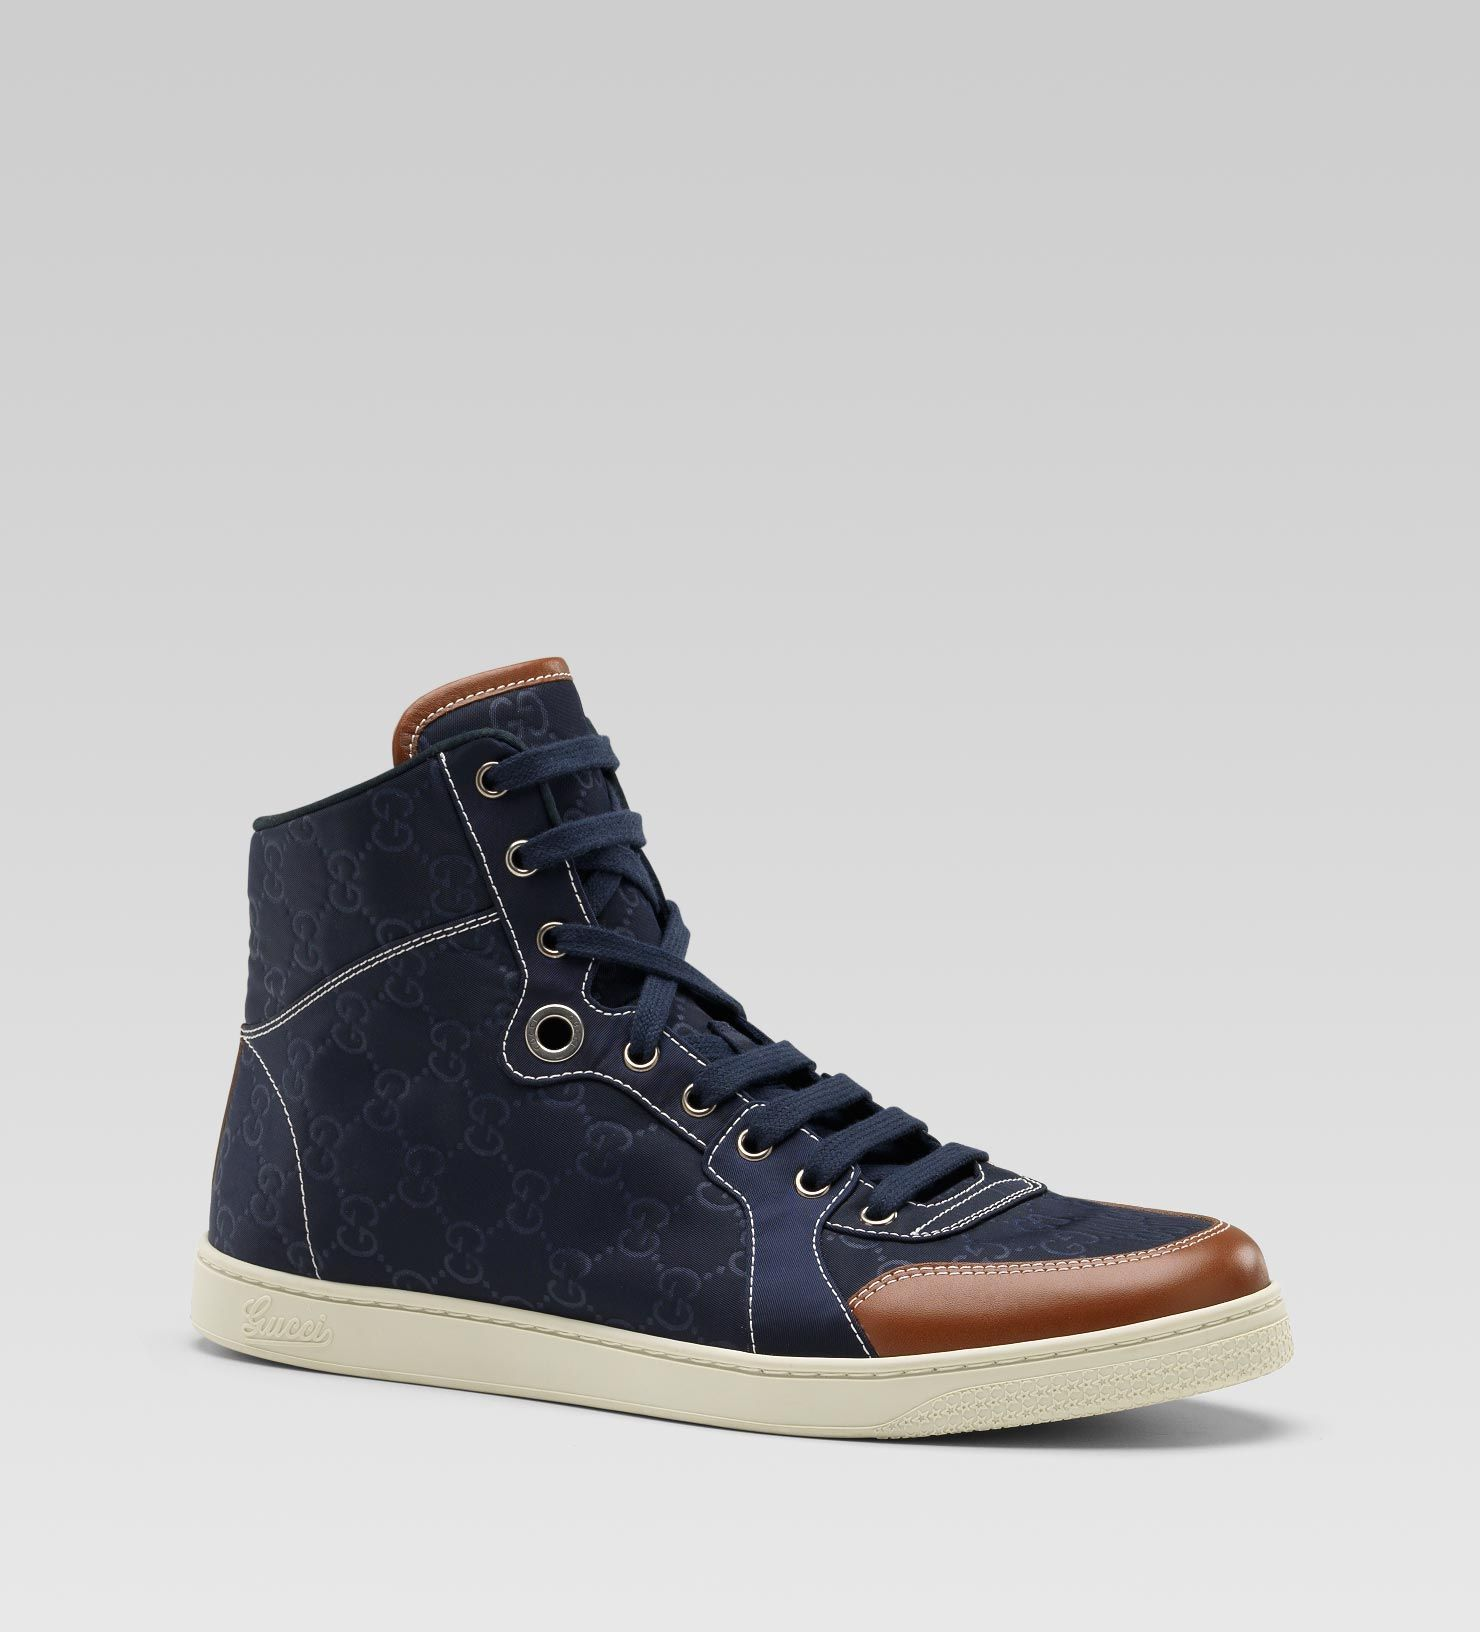 Gucci Sneakers | Gucci Men Hi Top Sneaker Blue Nylon Guccissima | Sneaker  Cabinet